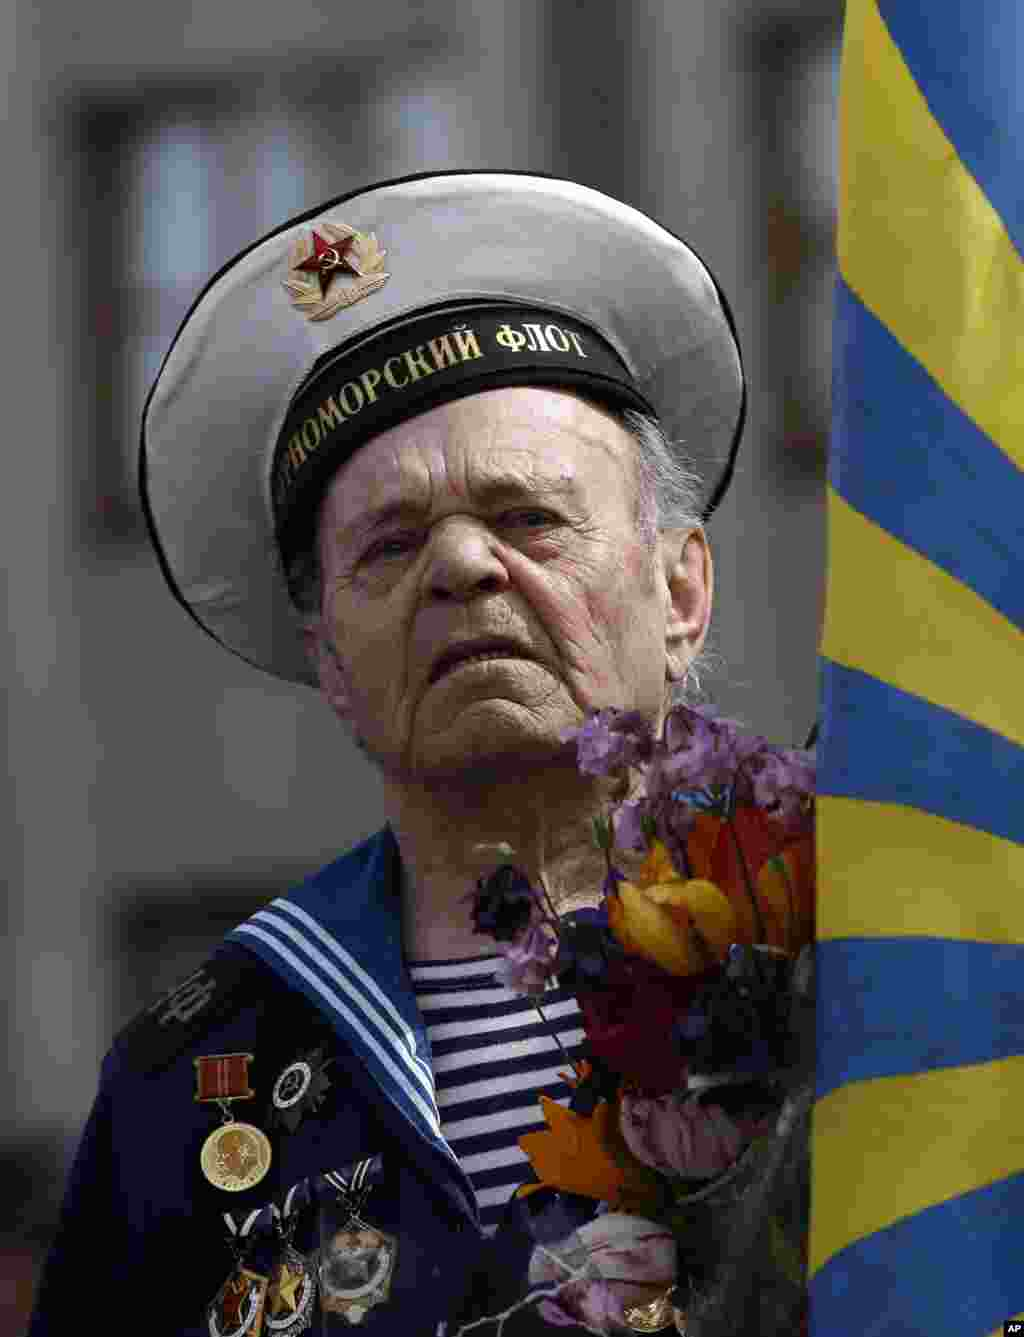 A World War II veteran attends a Victory Day celebration, which commemorates the 1945 defeat of Nazi Germany, in the center of Slovyansk, eastern Ukraine, May 9, 2014.